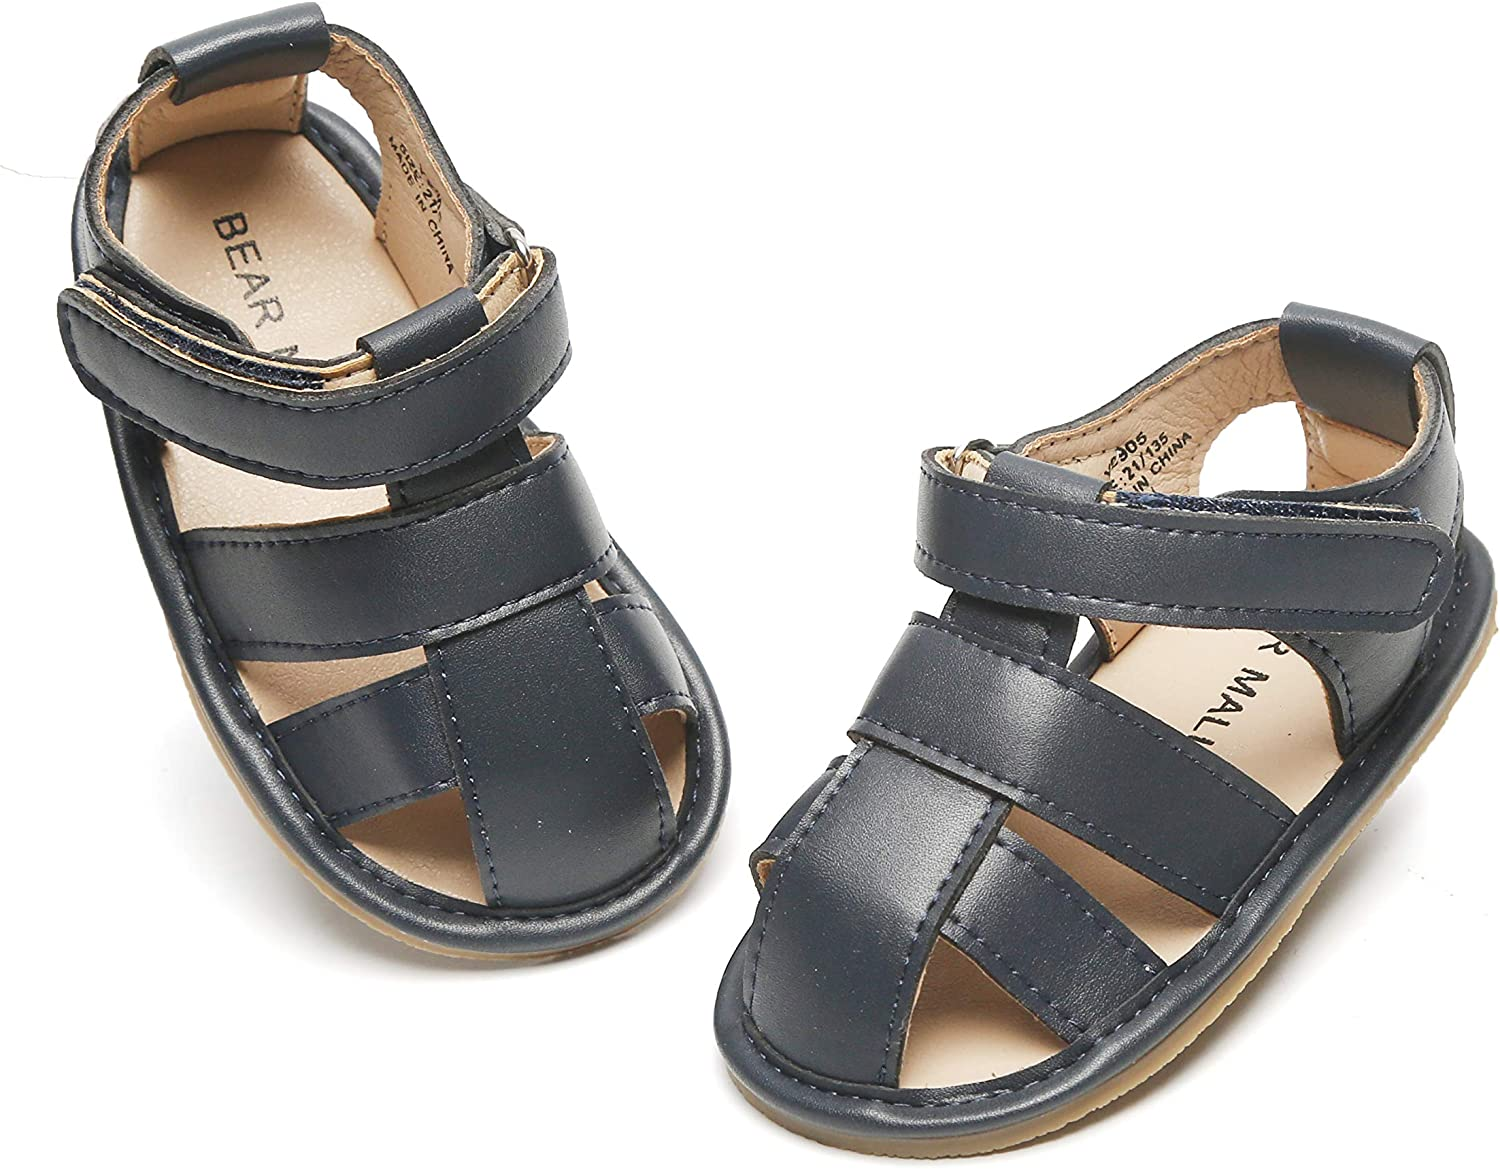 Felix & Flora Baby Toddler Girls Boys Sandals - Soft Rubber Sole Leather Baby Walking Shoes(Infant/Toddler)